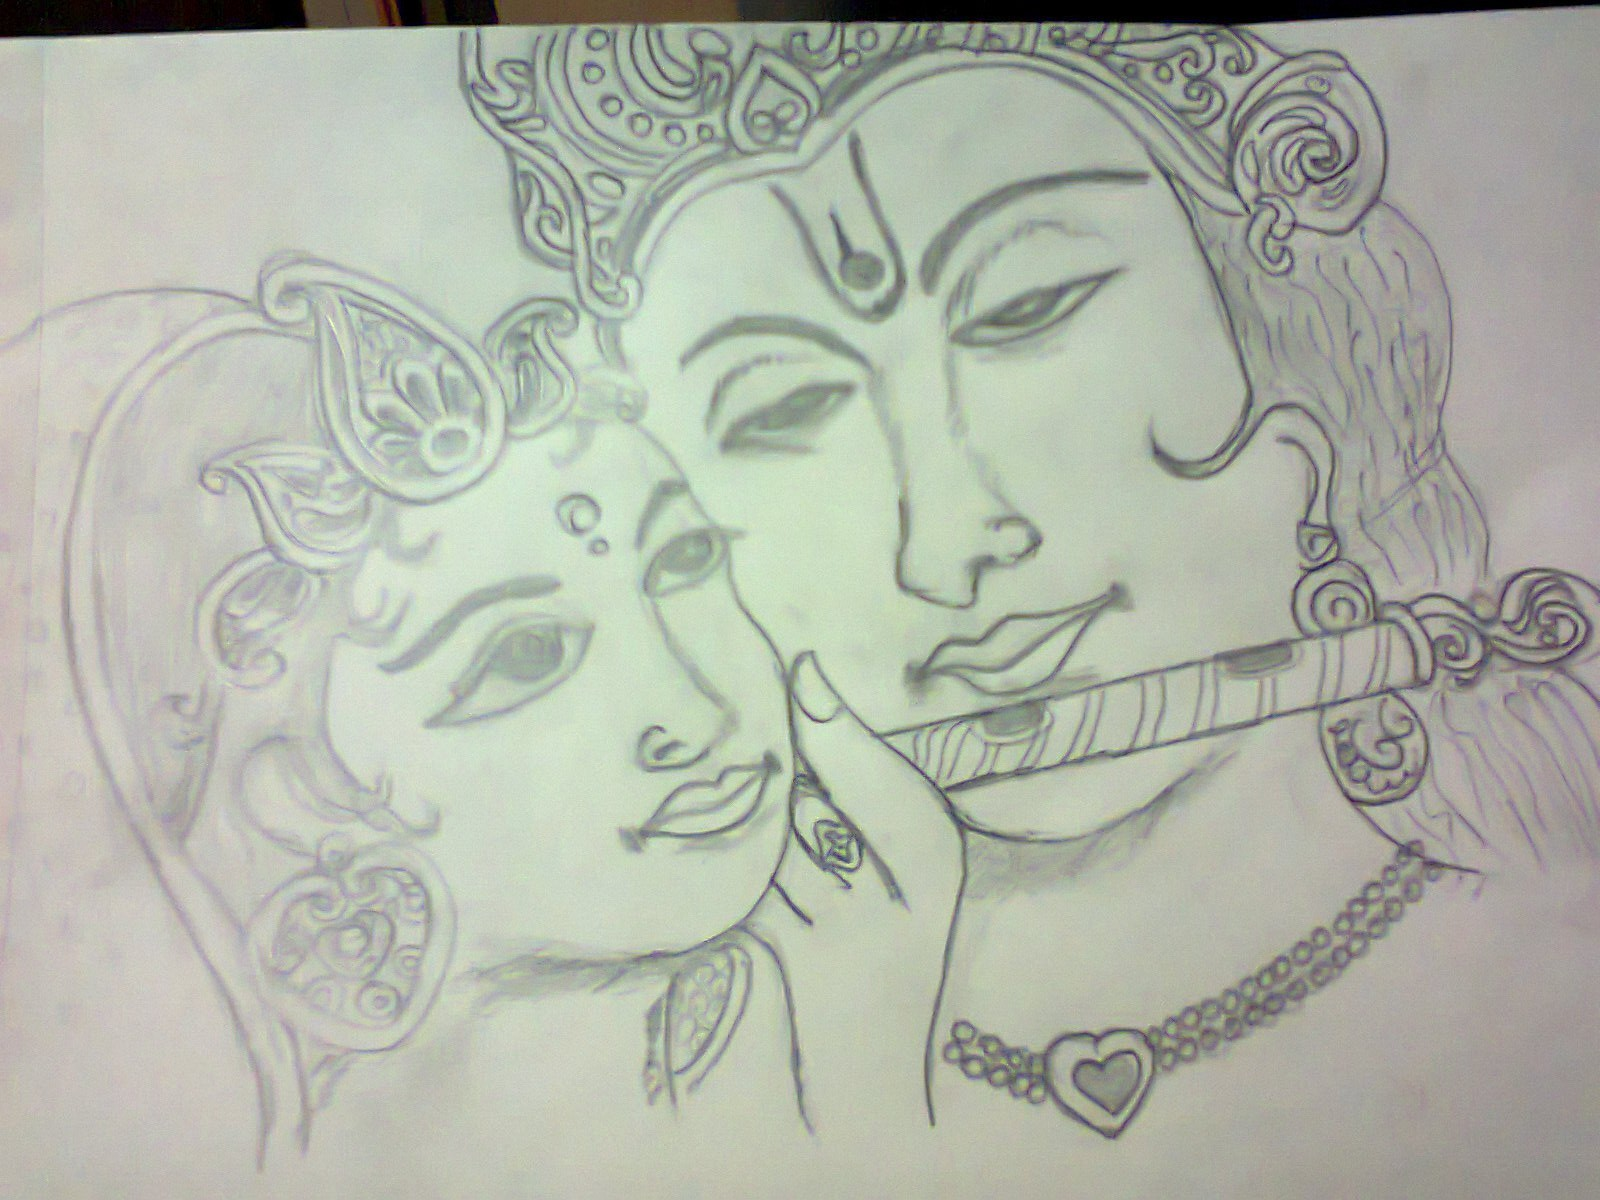 Raja Rani Wallpapers With Quotes Sketch Of Krishan And Radha Ji Desicomments Com